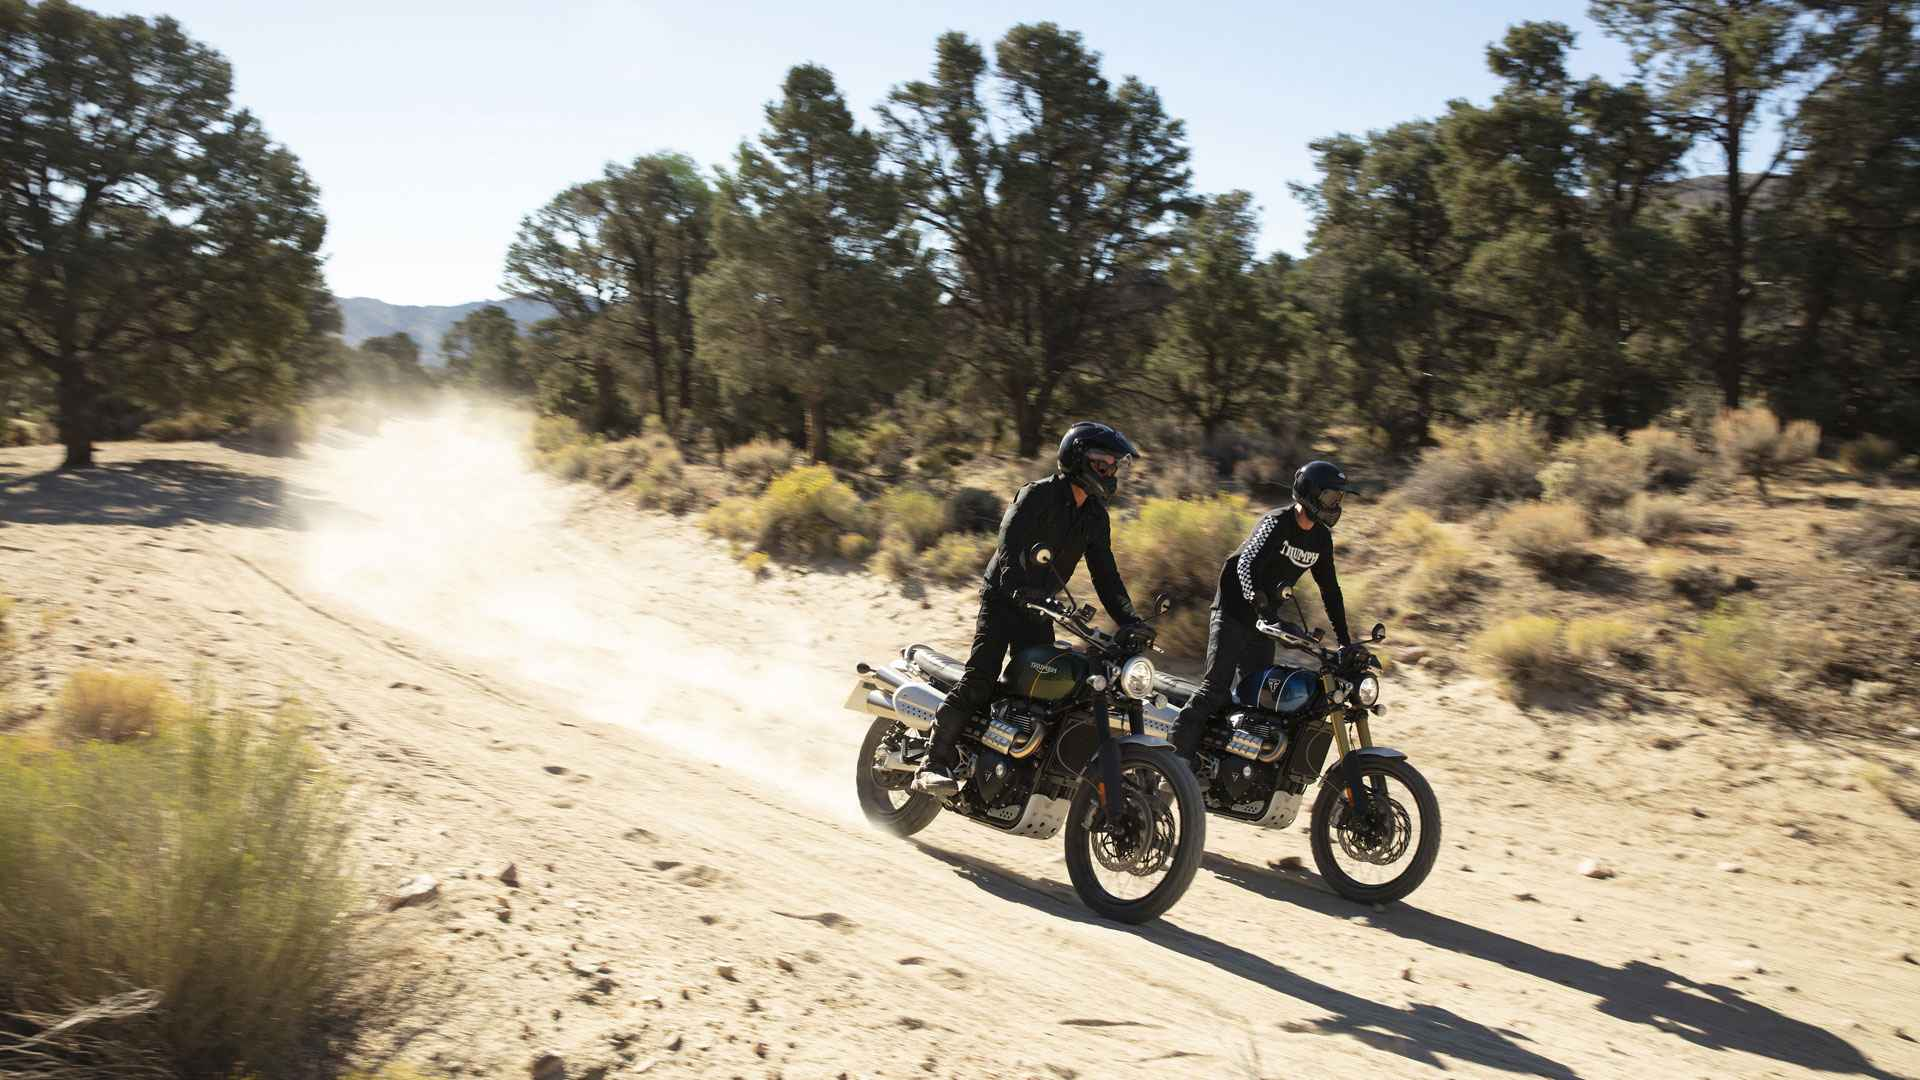 2019 Triumph Scrambler 1200 Everything We Know